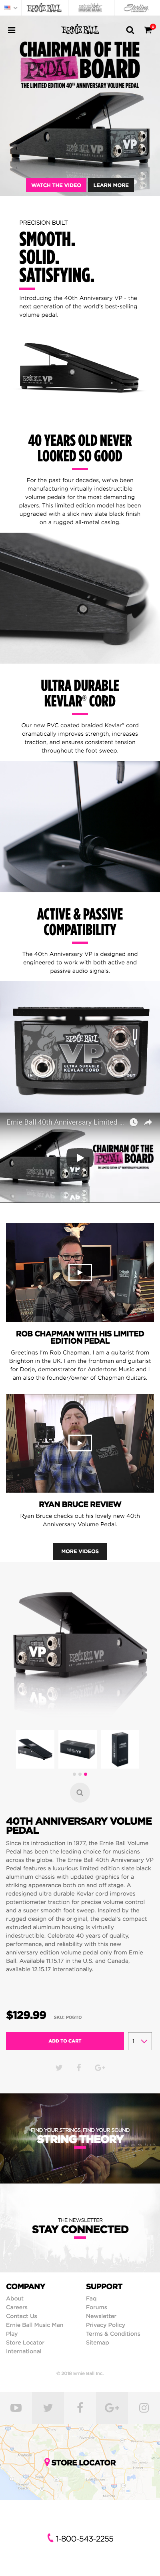 screencapture-ernieball-guitar-accessories-pedals-40th-anniversary-volume-pedal-2018-03-18-13_35_46.png